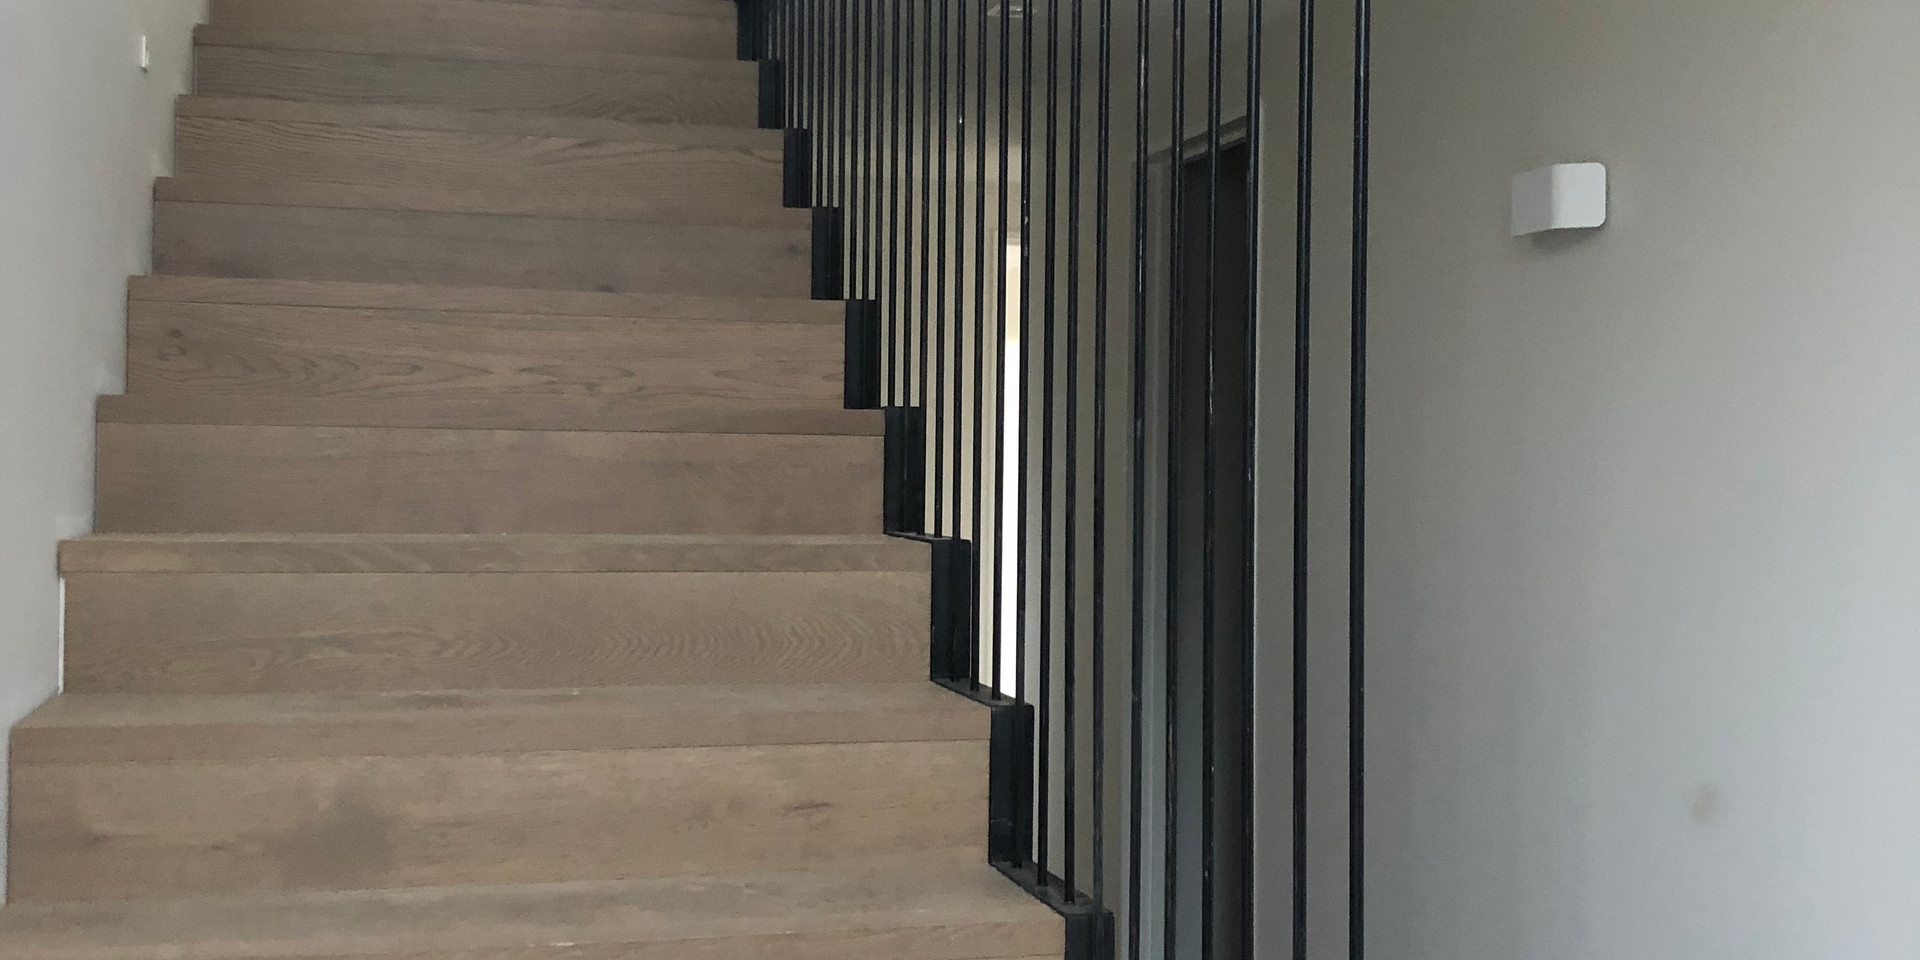 Floating stair balustrade